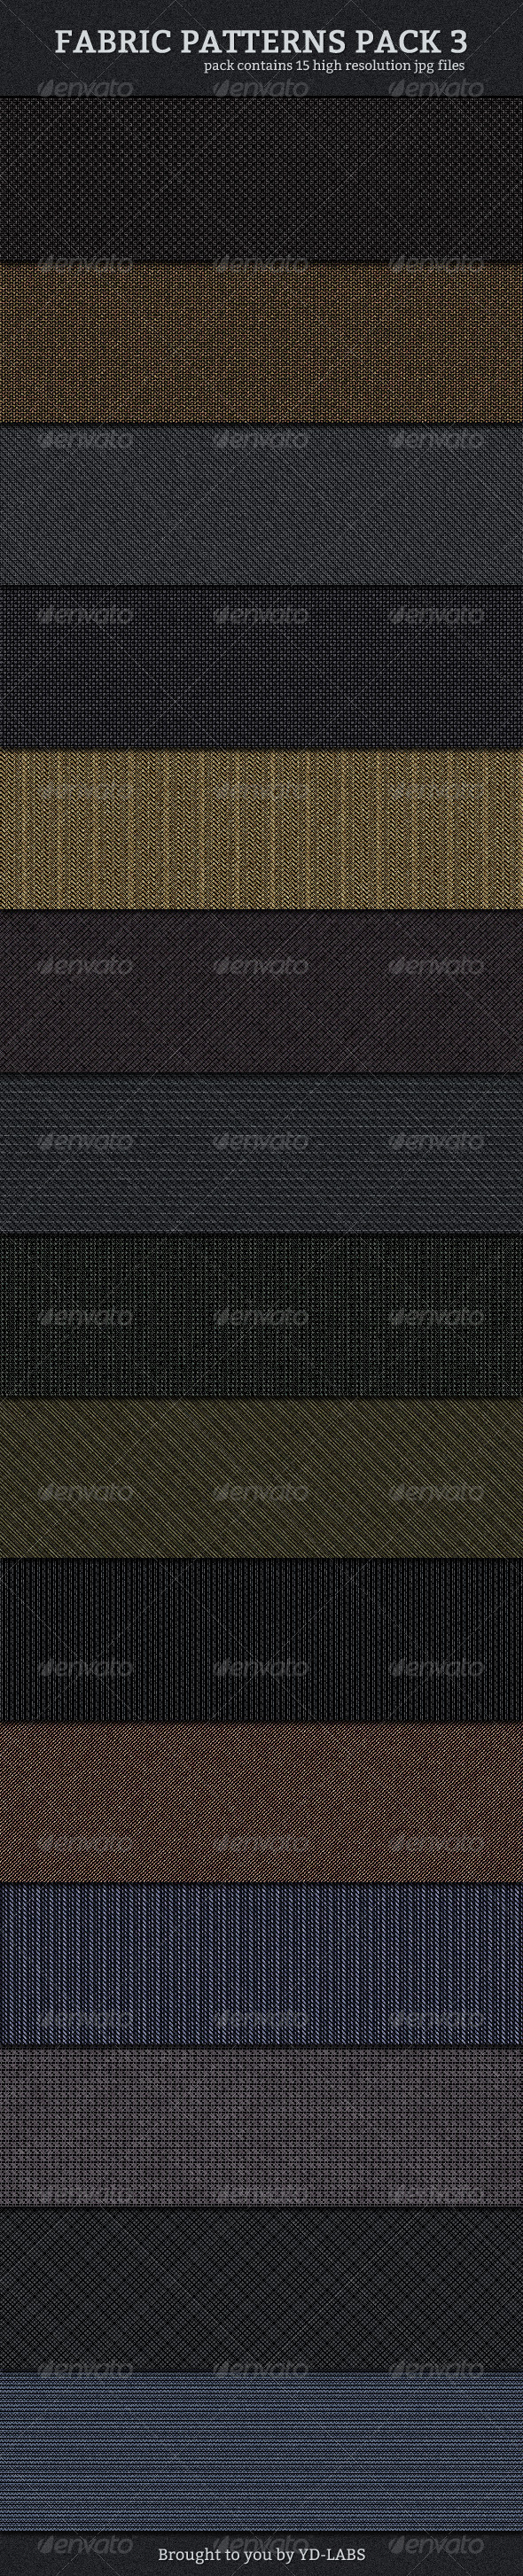 Fabric Pack 3 - Fabric Textures